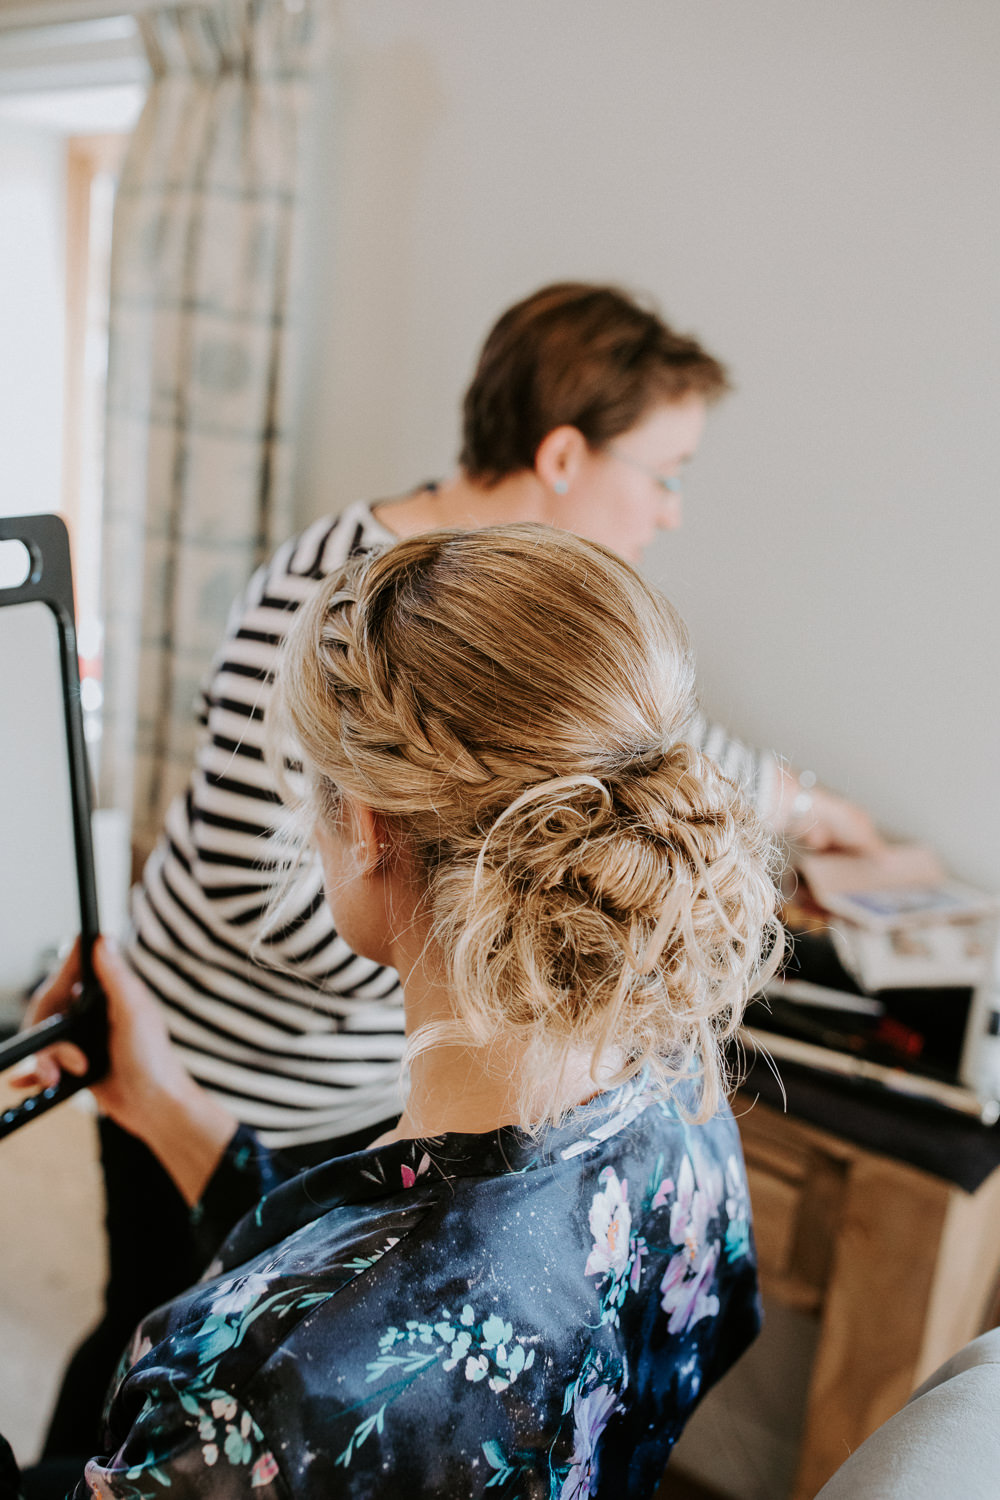 Hair Bride Bridal Up Do Style Plait Braid Messy Bun Barn Upcote Wedding Siobhan Beales Photography